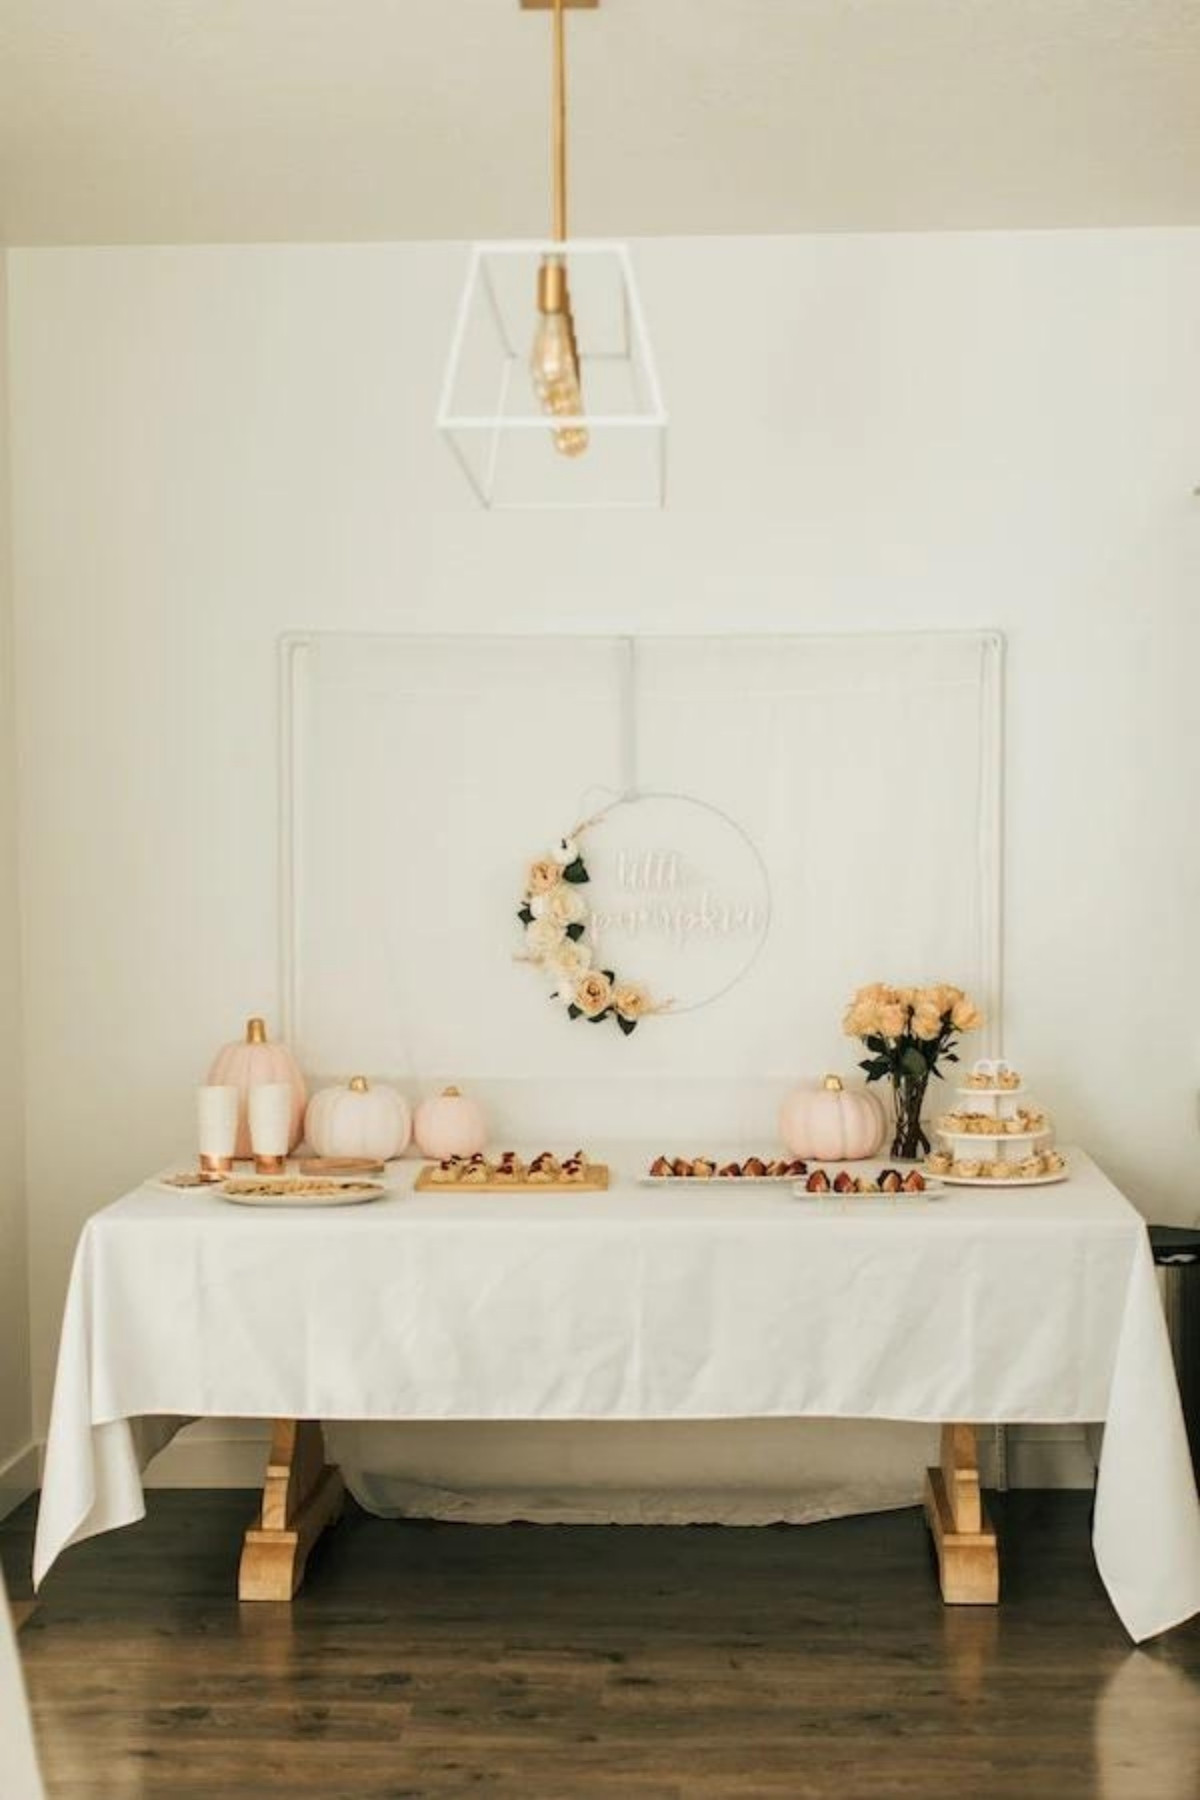 Party food table with trays of snacks, cups, pumpkins, flowers, and curtain backdrop.